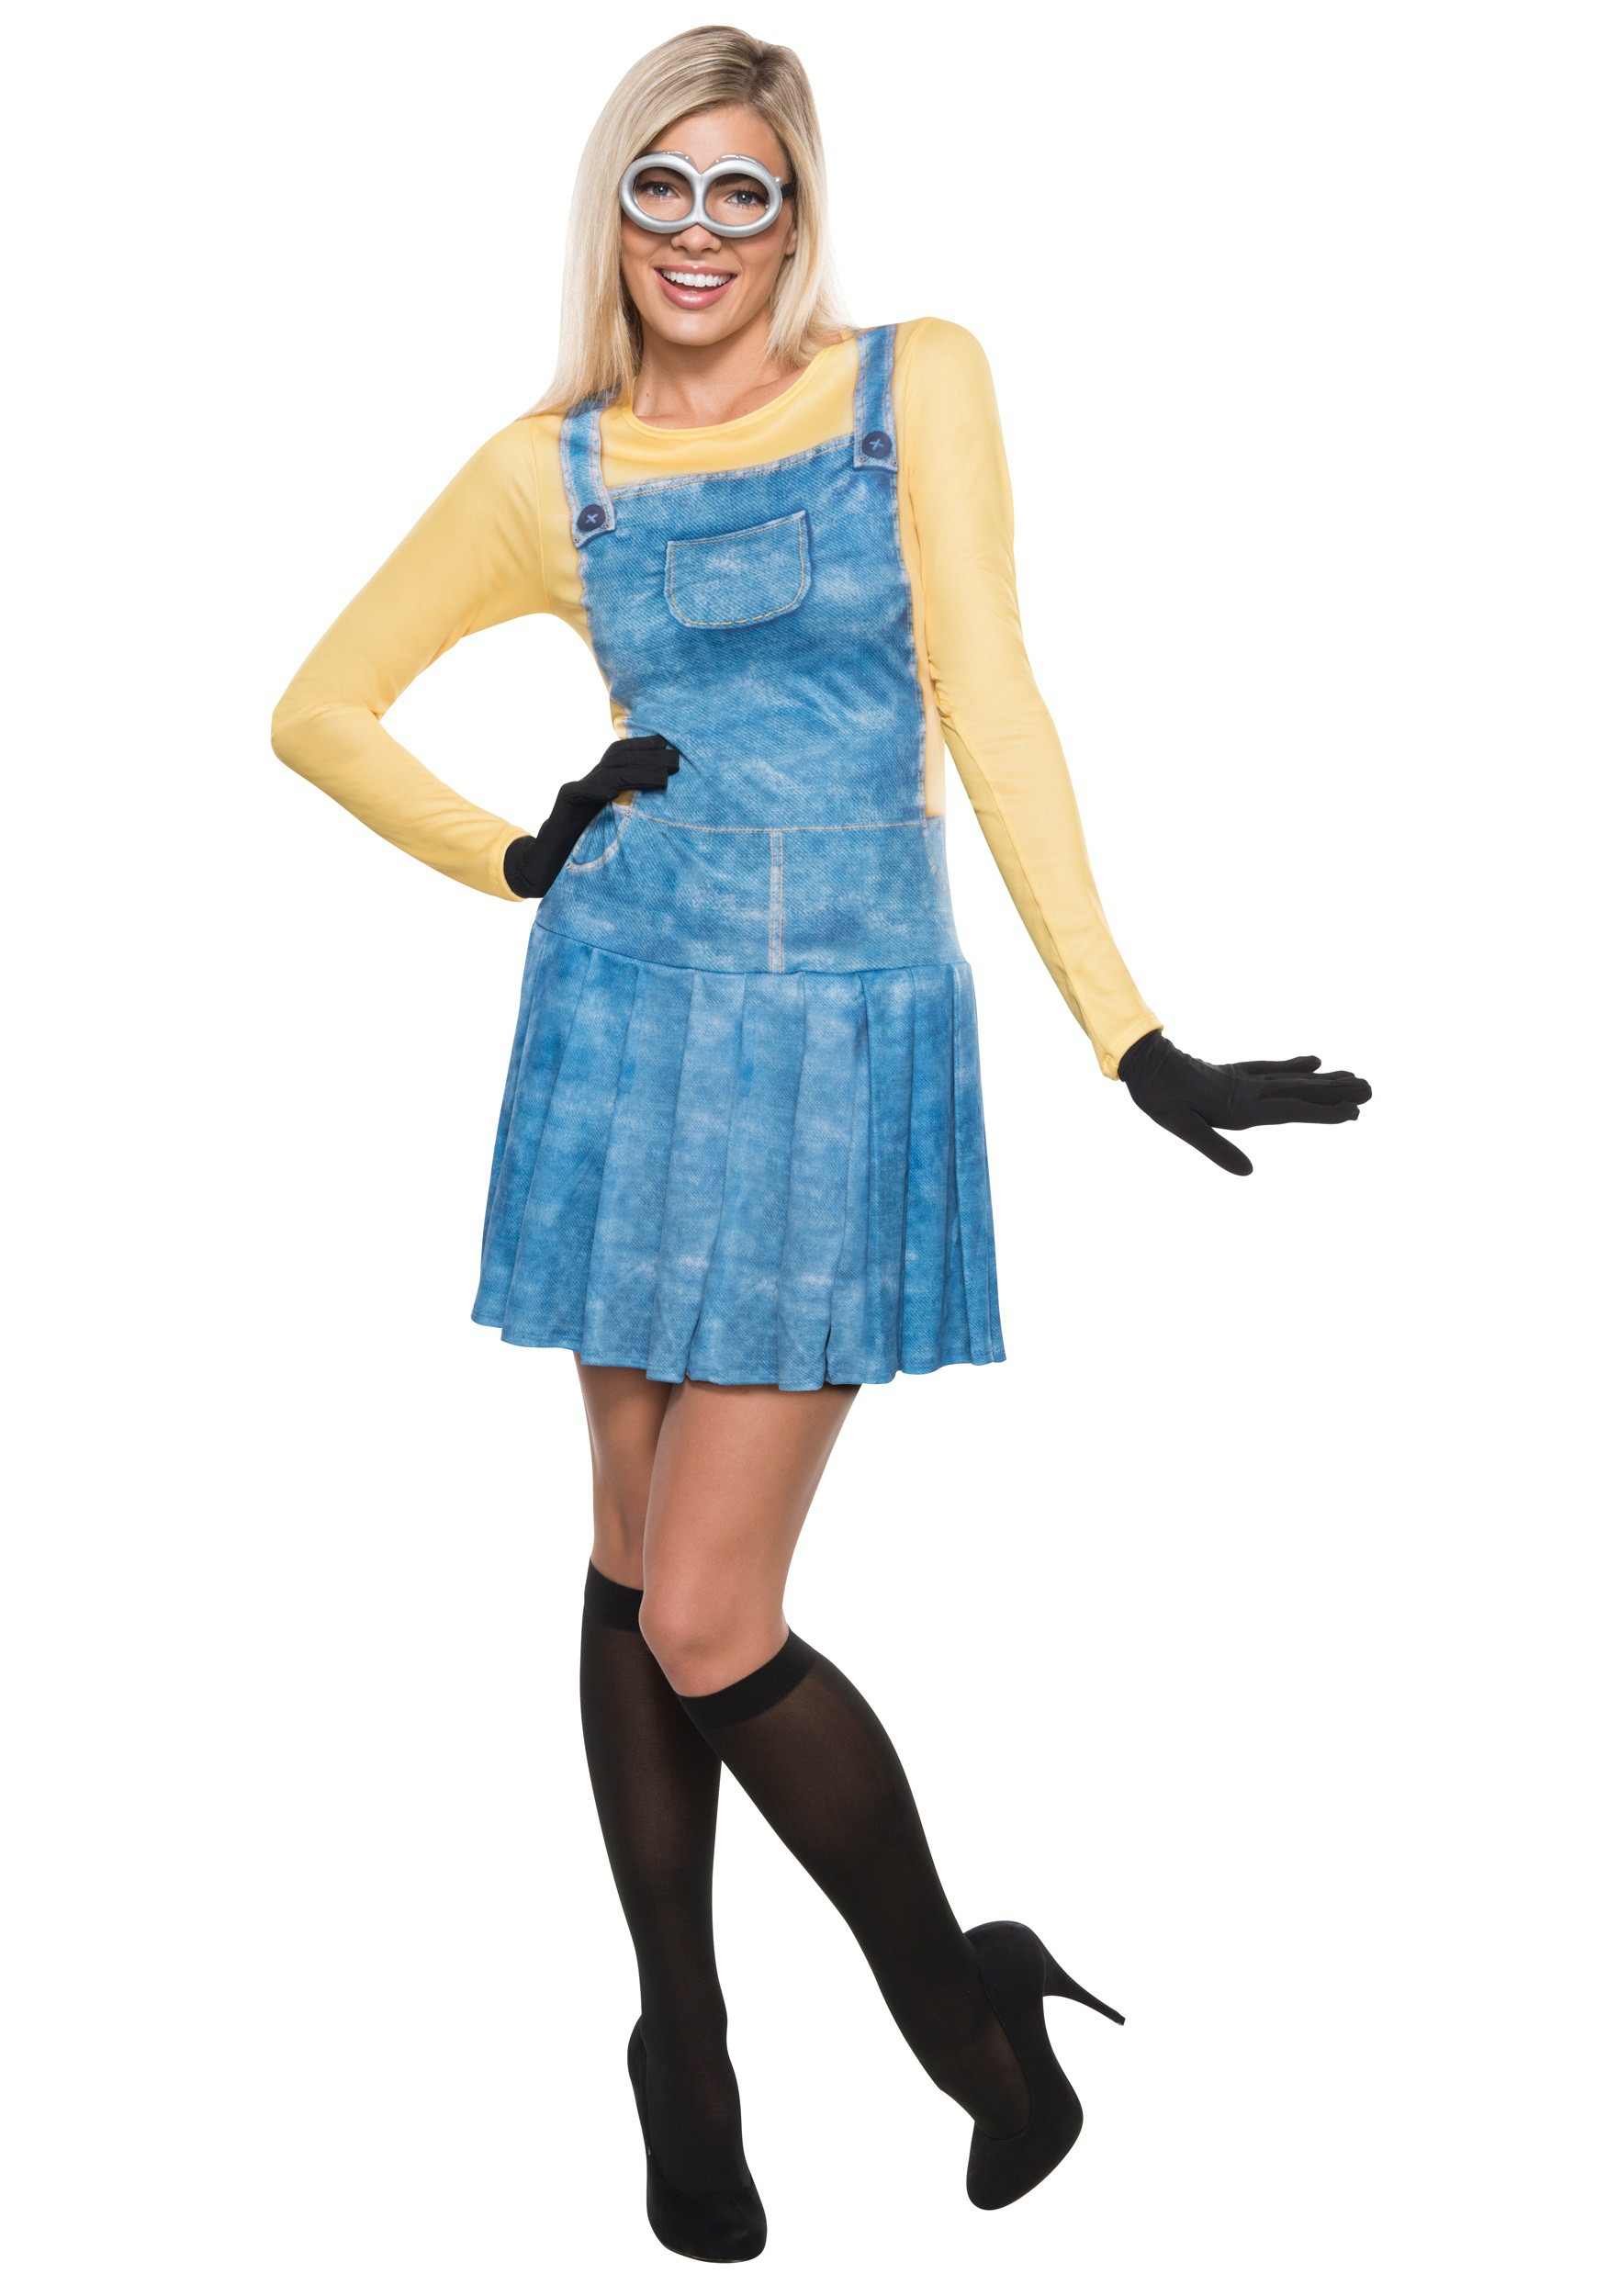 Adult Women's Minion Costume